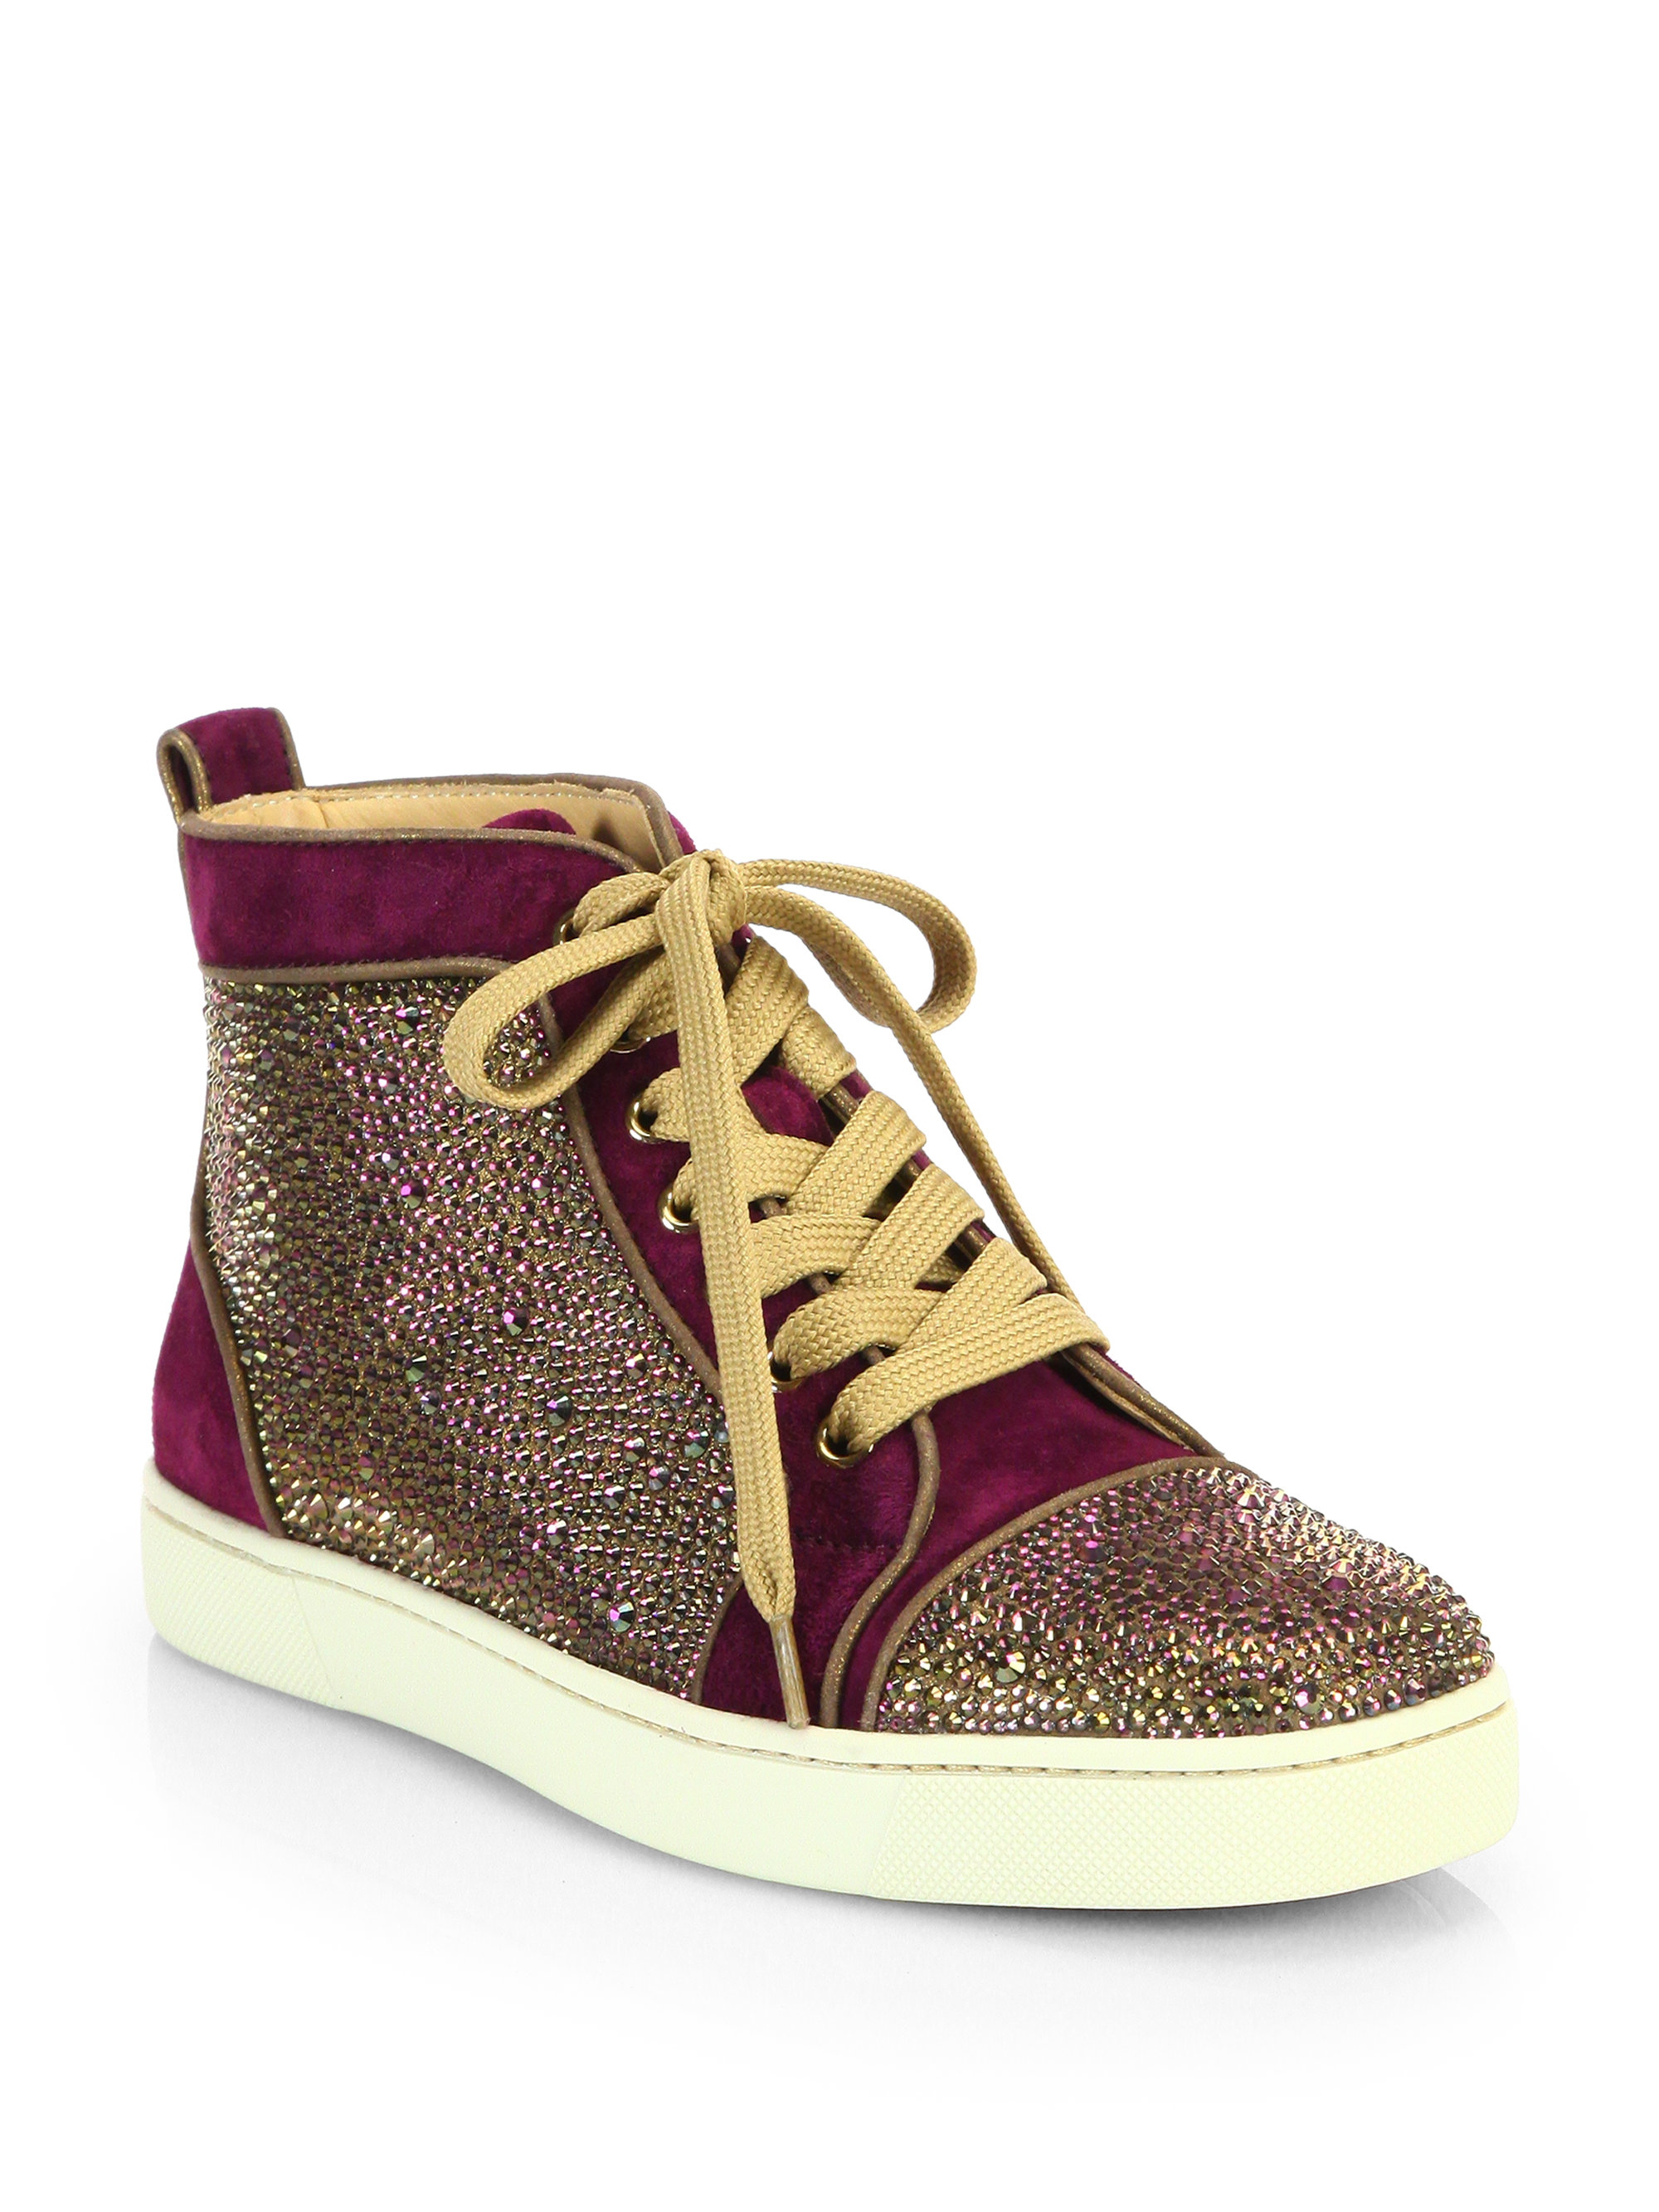 christian louboutin louis woman velour high top sneakers. Black Bedroom Furniture Sets. Home Design Ideas